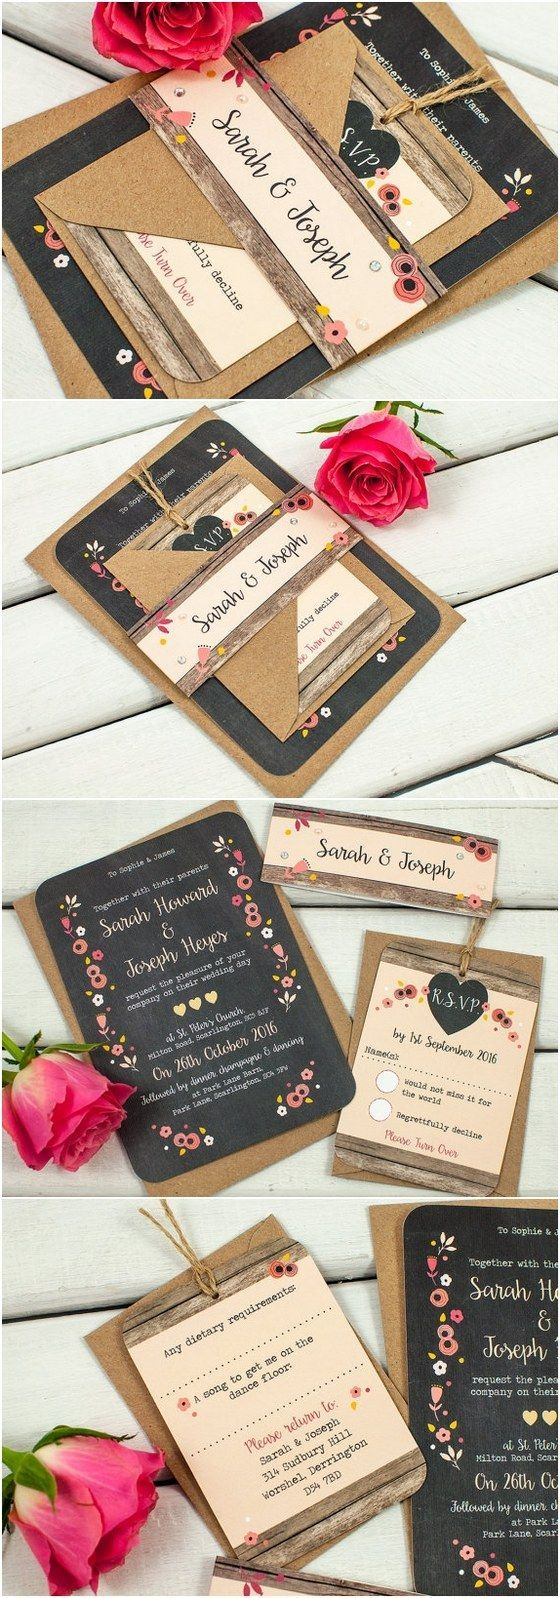 how much do invitations for wedding cost%0A How to DIY Pocket Invitations  the Easy Way   Free invitation templates   Cheap wedding invitations and Pocket invitation